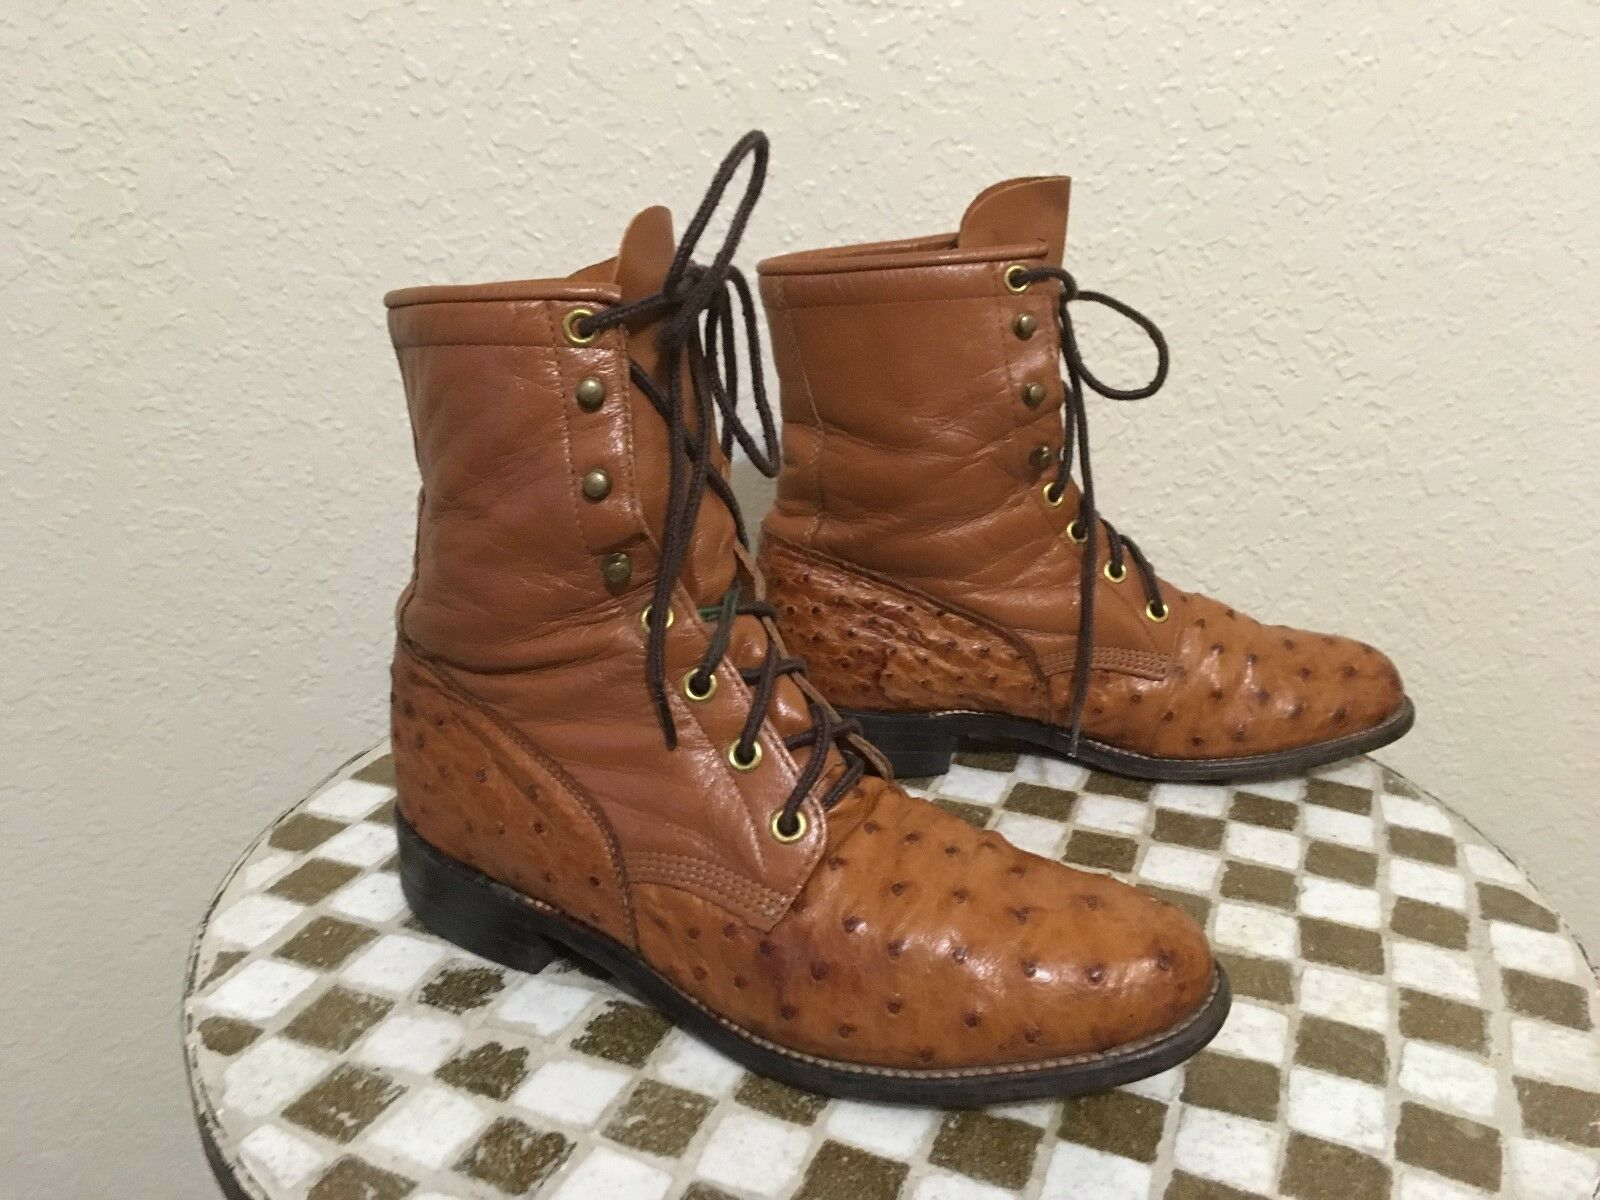 USA COGNAC BROWN DISTRESSED JUSTIN L 654 WESTERN LACE UP OSTRICH BOOTS 6.5 B